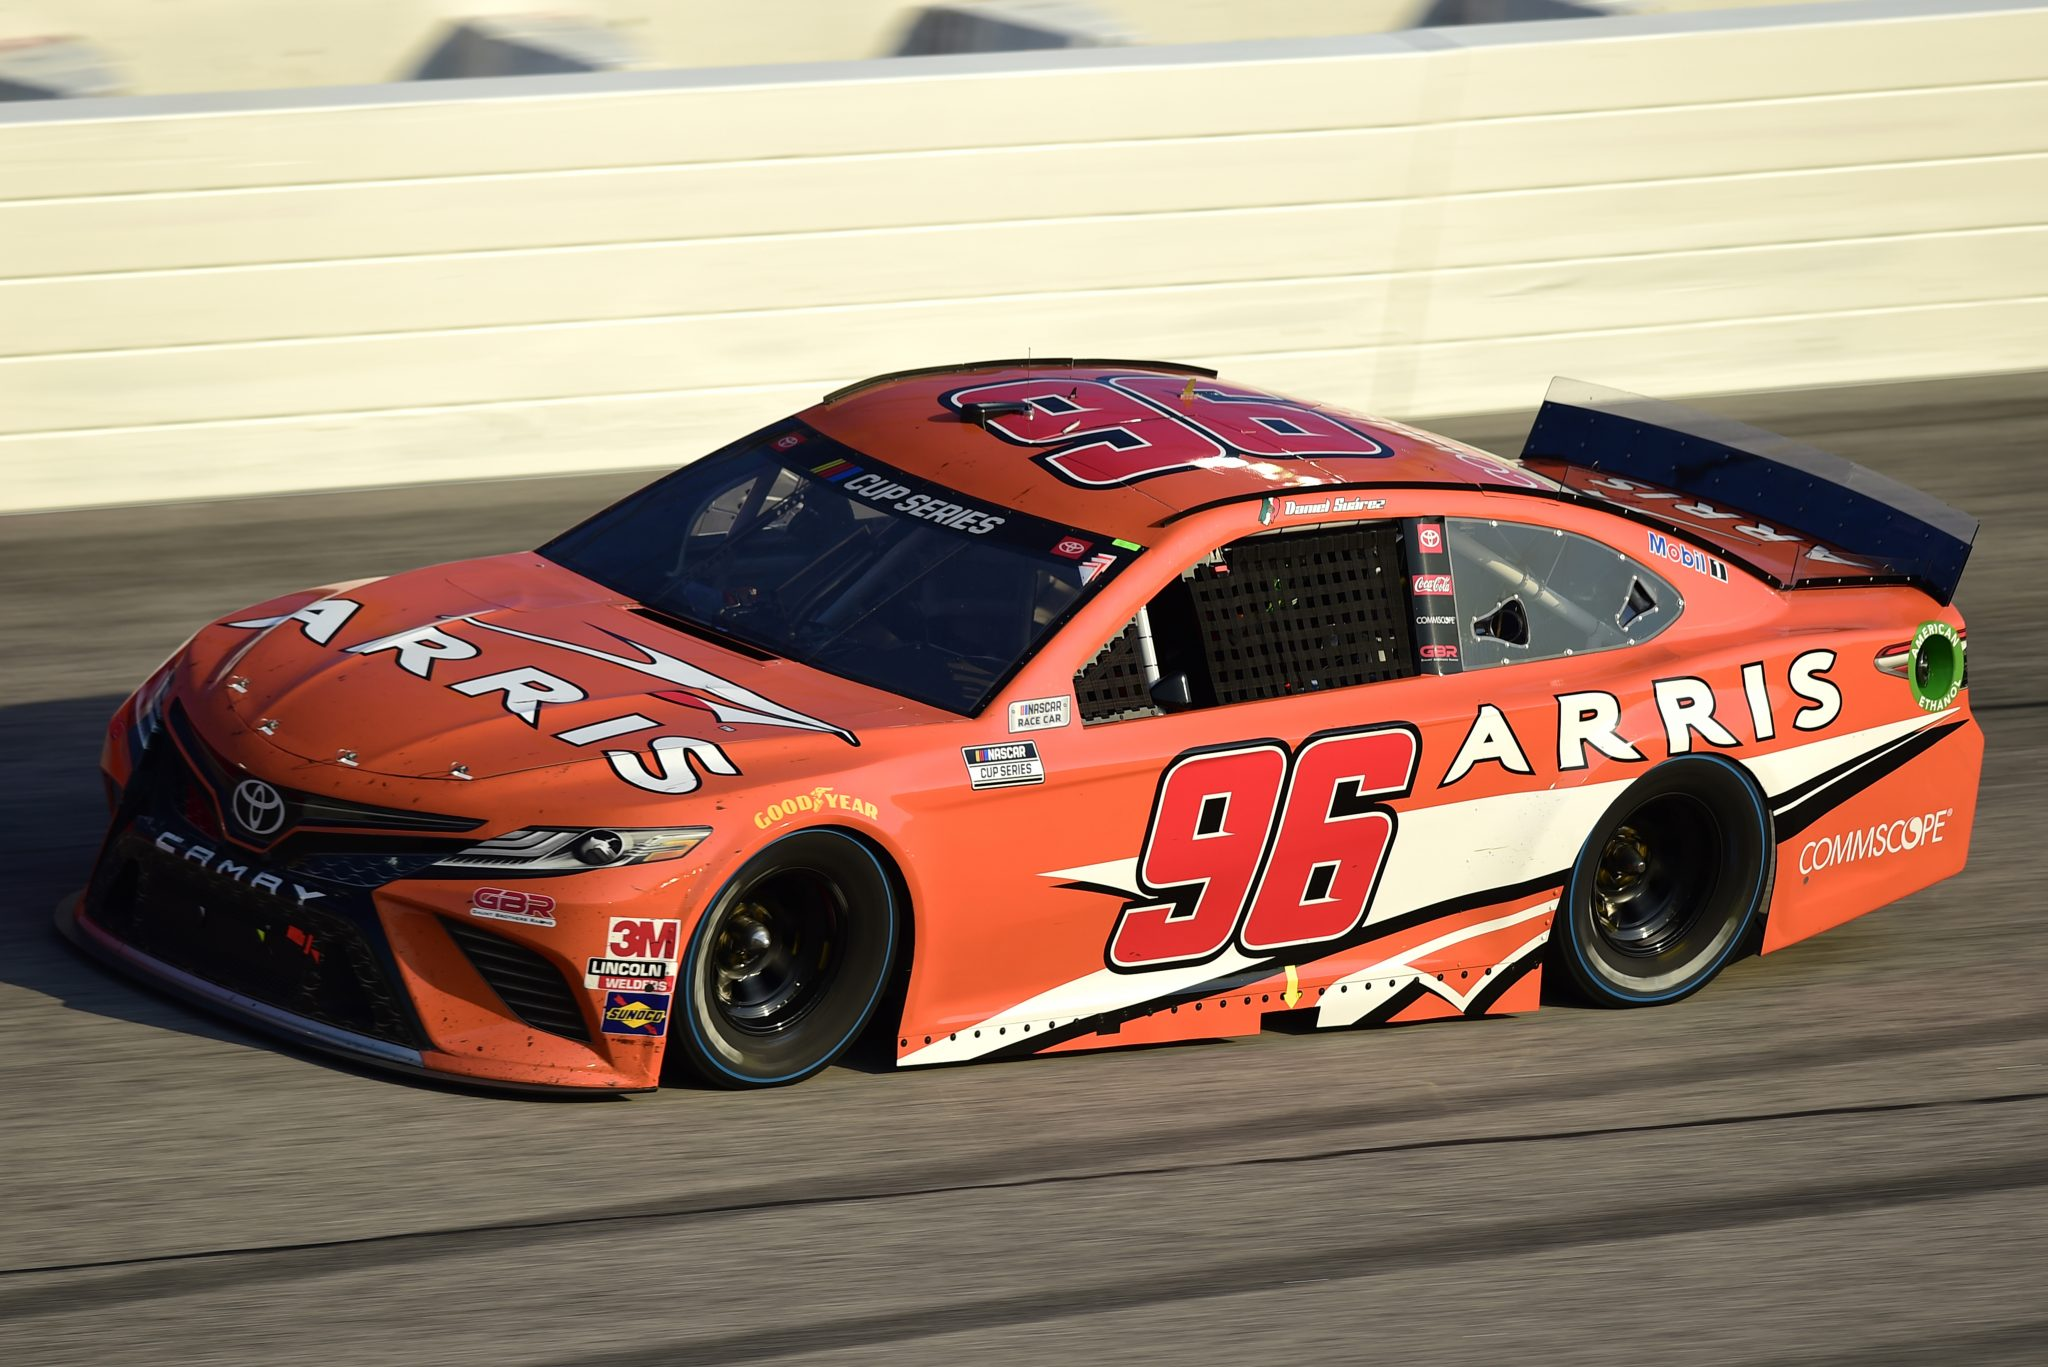 DARLINGTON, SOUTH CAROLINA - SEPTEMBER 06: Daniel Suarez, driver of the #96 ARRIS now CommScope Toyota, drives during the NASCAR Cup Series Cook Out Southern 500 at Darlington Raceway on September 06, 2020 in Darlington, South Carolina. (Photo by Jared C. Tilton/Getty Images) | Getty Images